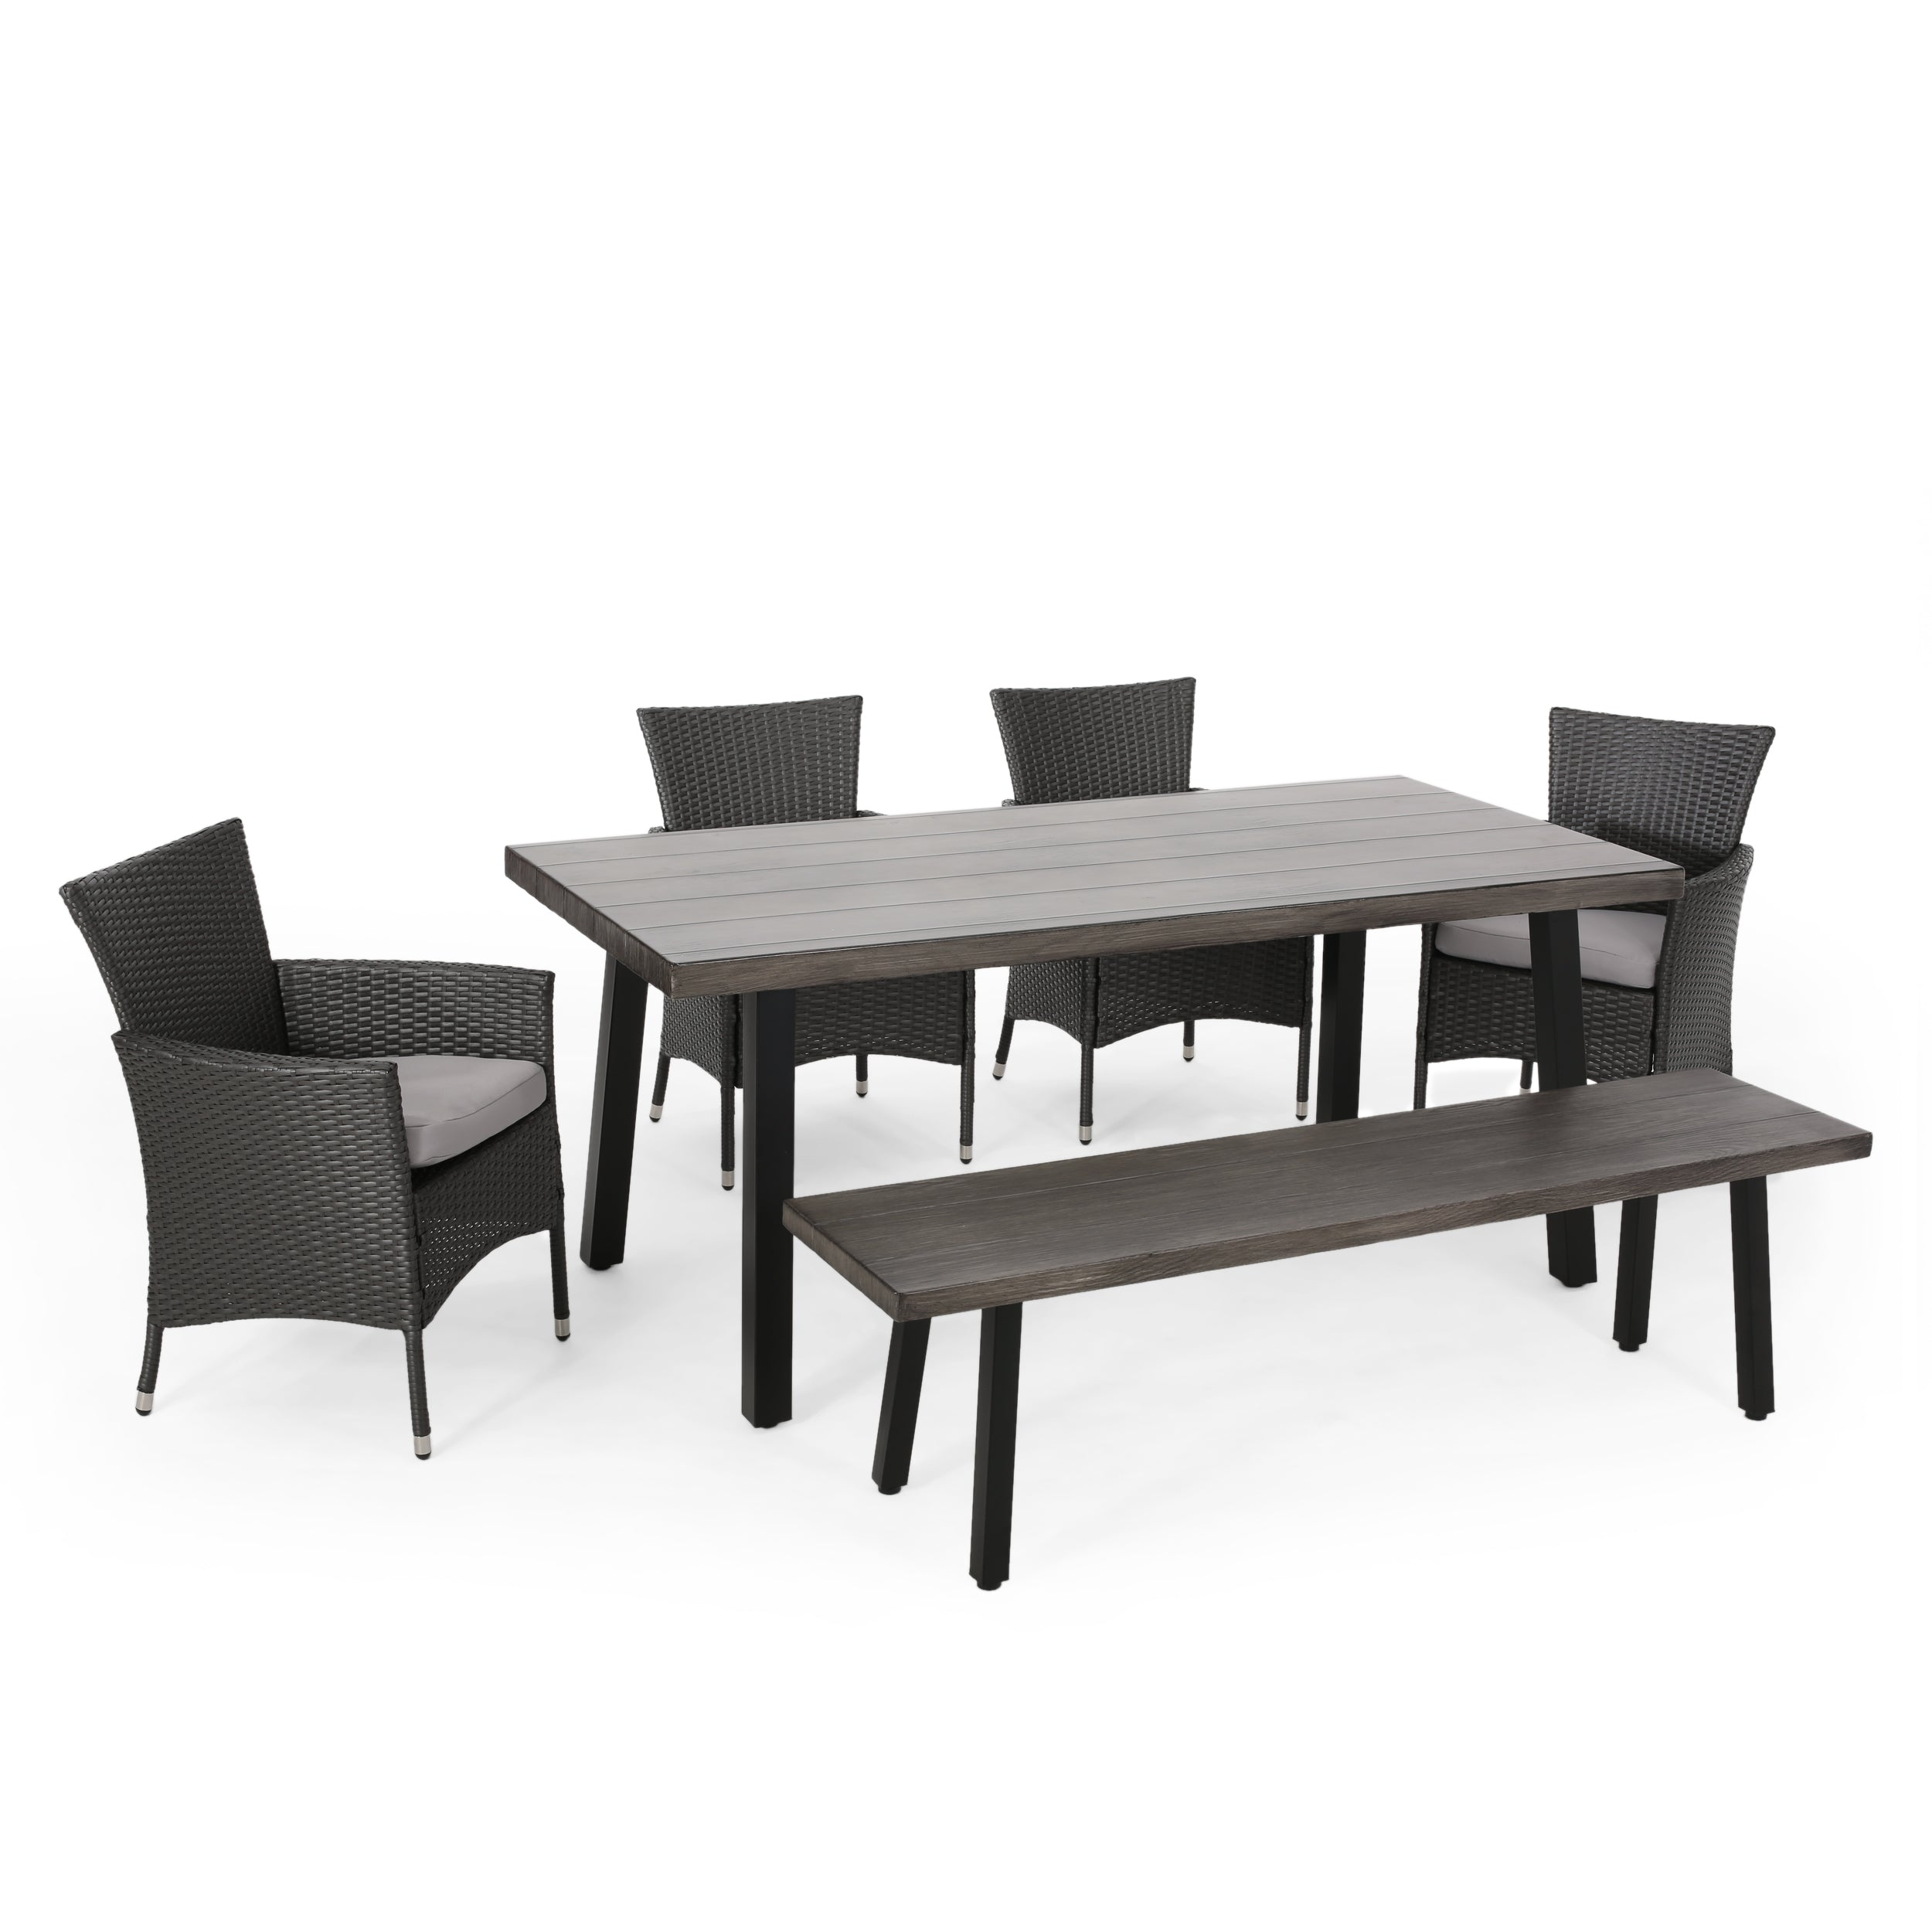 Altair Outdoor 6 Piece Aluminum Dining Set with Bench Default Title